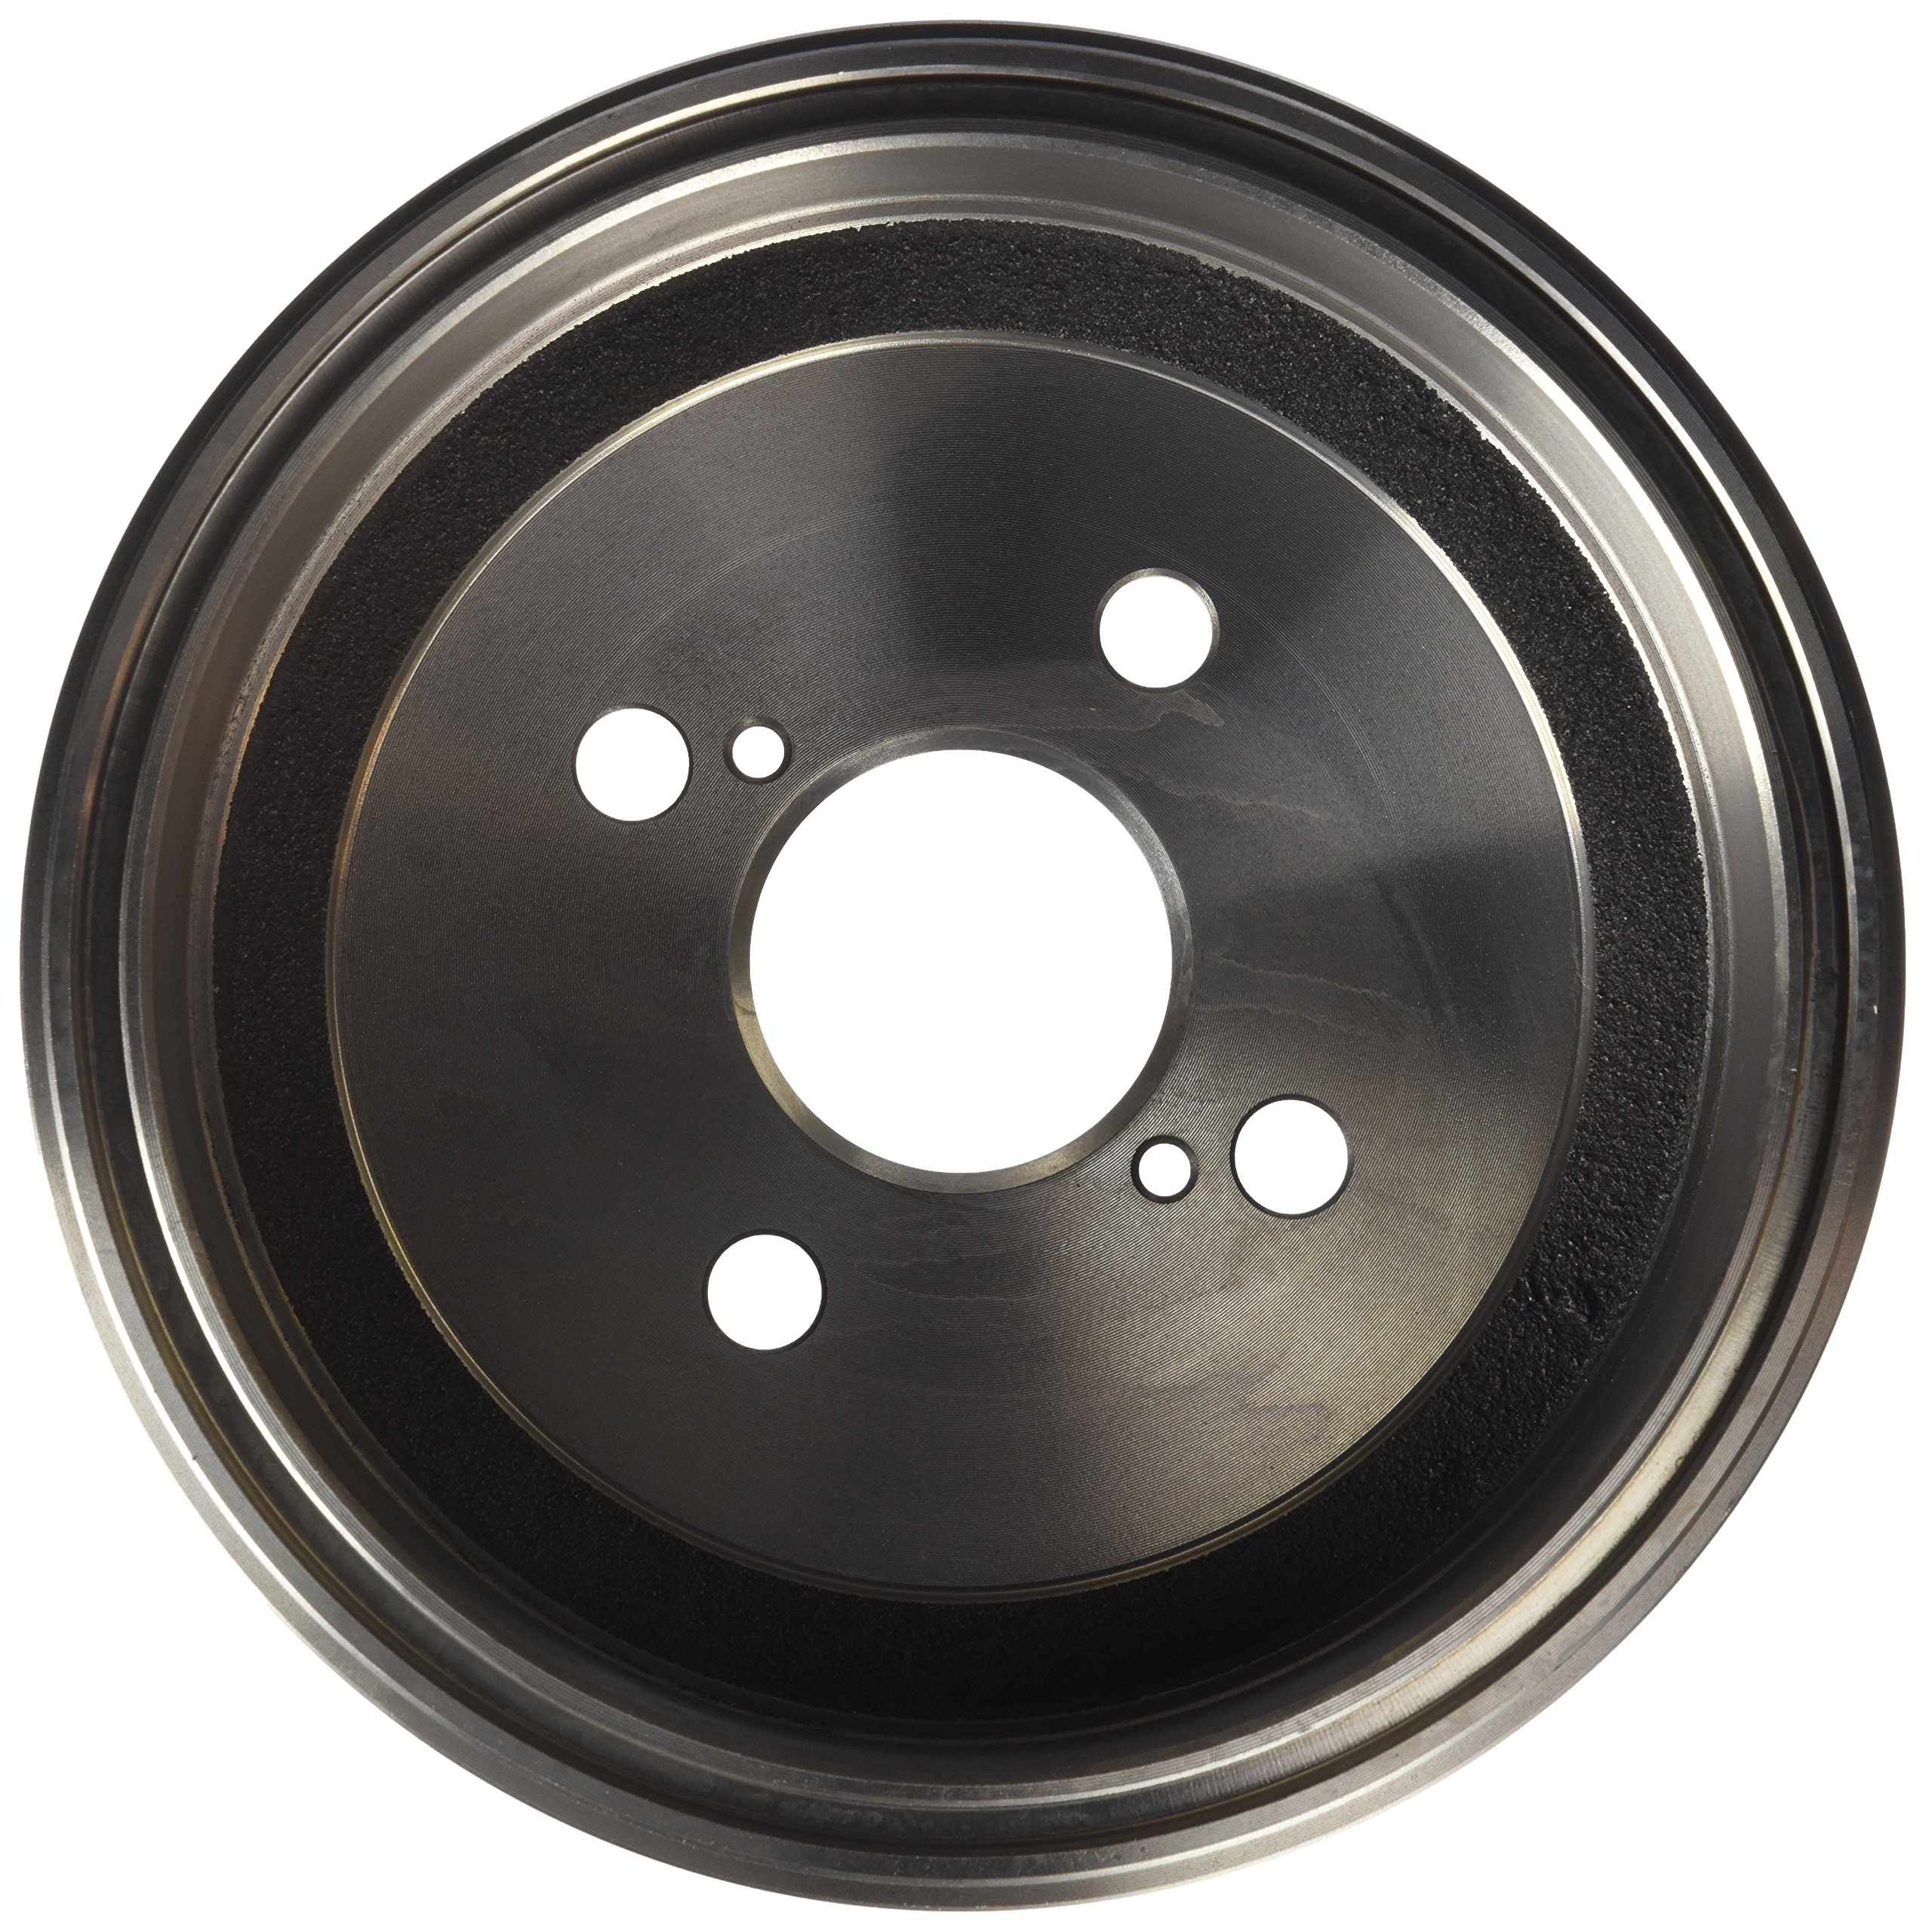 Centric Parts 123.44032 C-Tek Standard Brake Drum